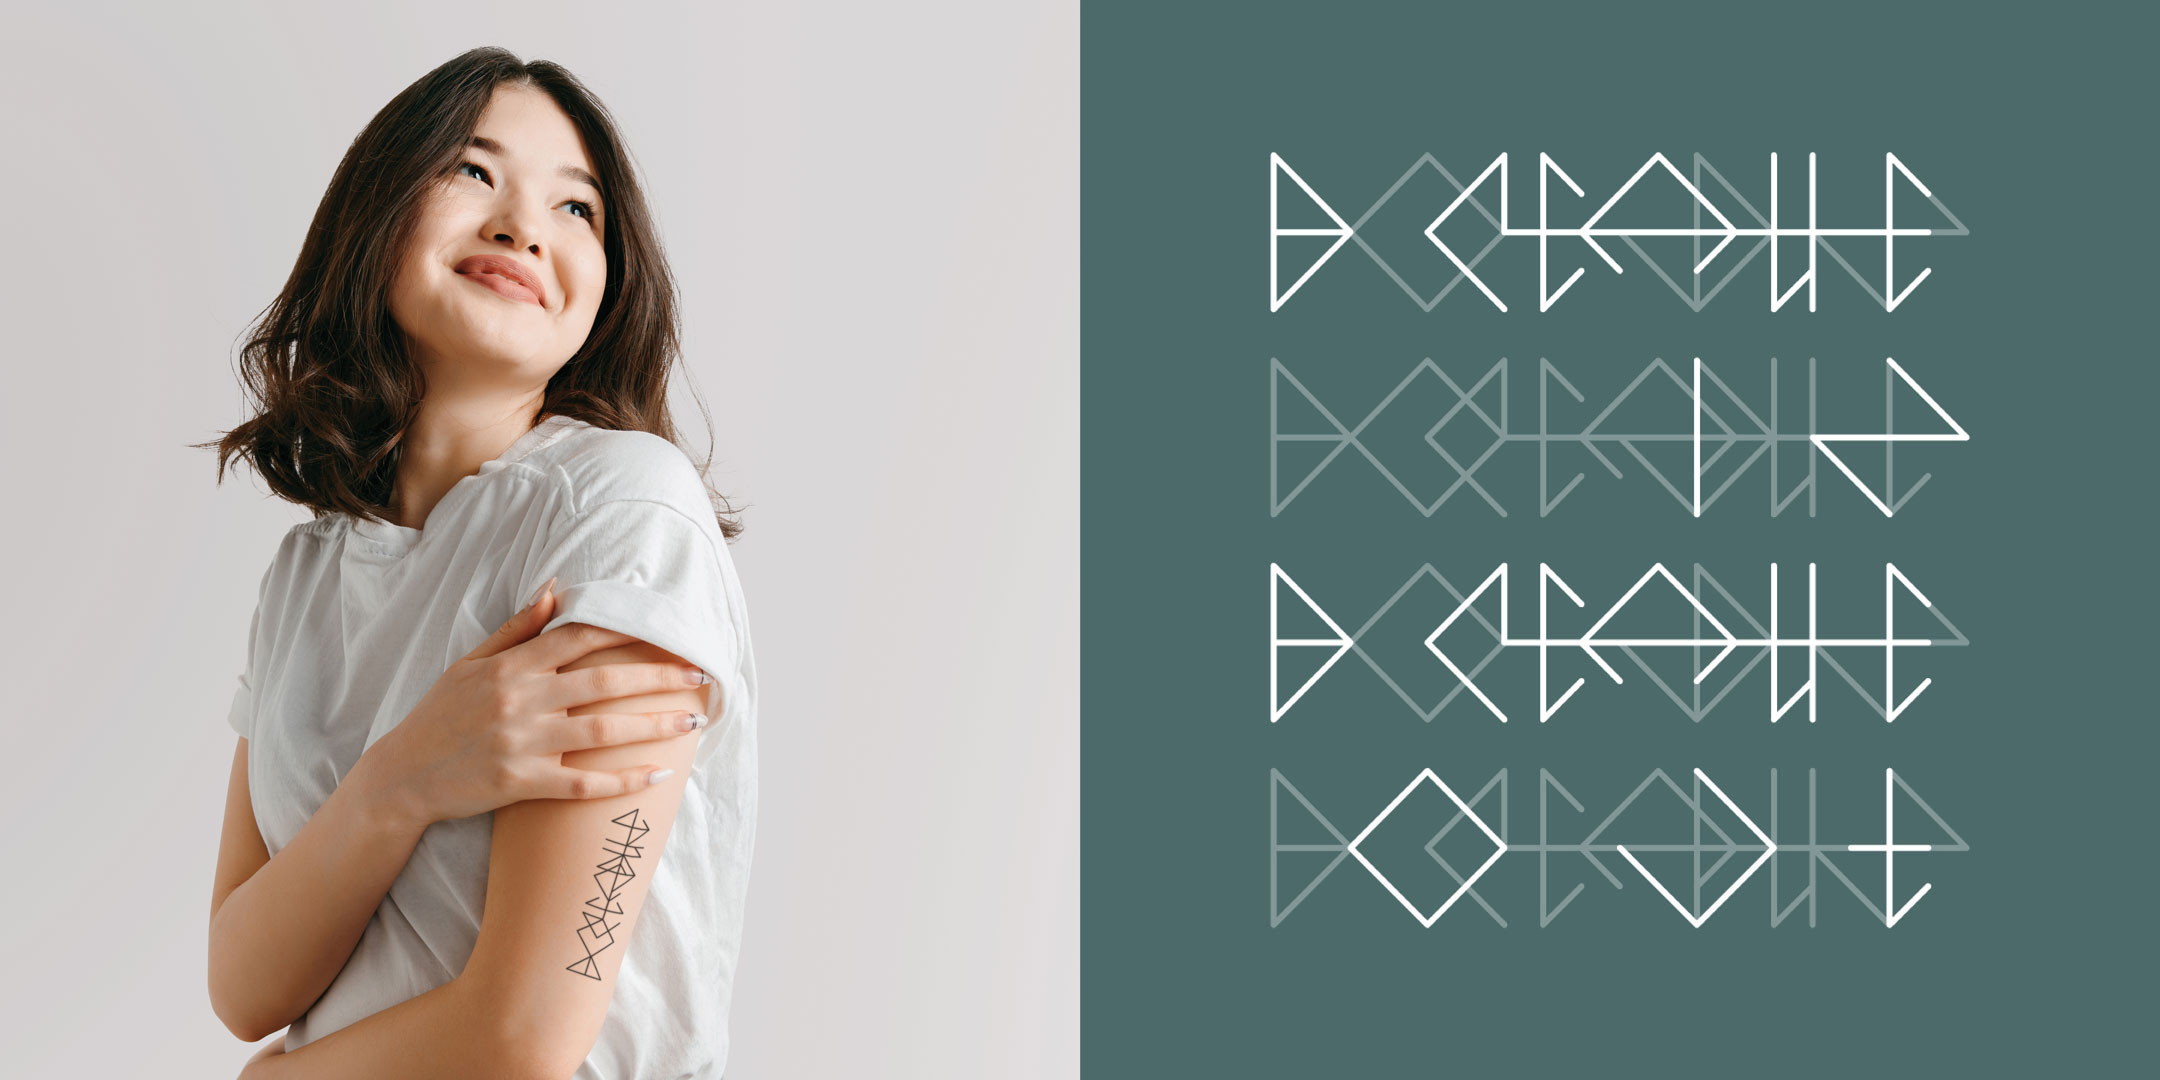 Tattoo with meaning Breathe by Discreet Tattoos